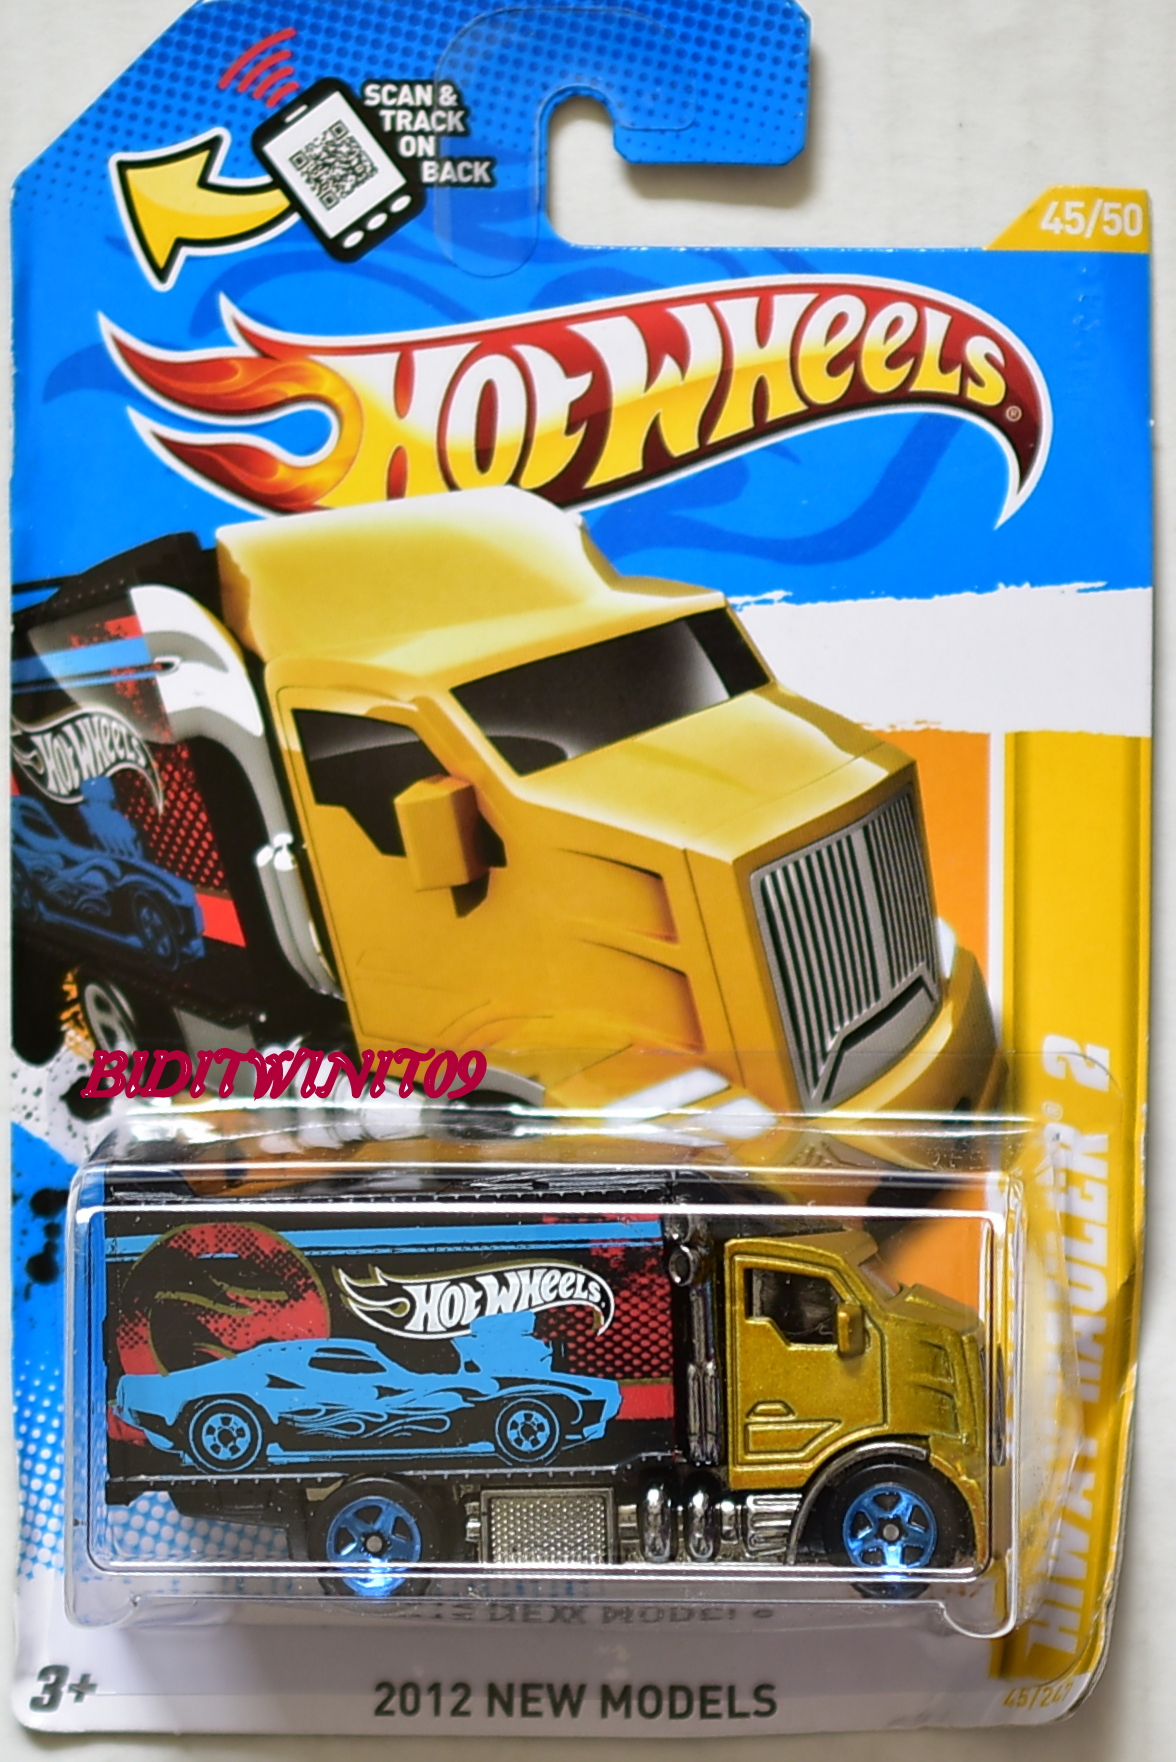 HOT WHEELS 2012 NEW MODELS HIWAY HAULER 2 #45/50 [0005497 ...